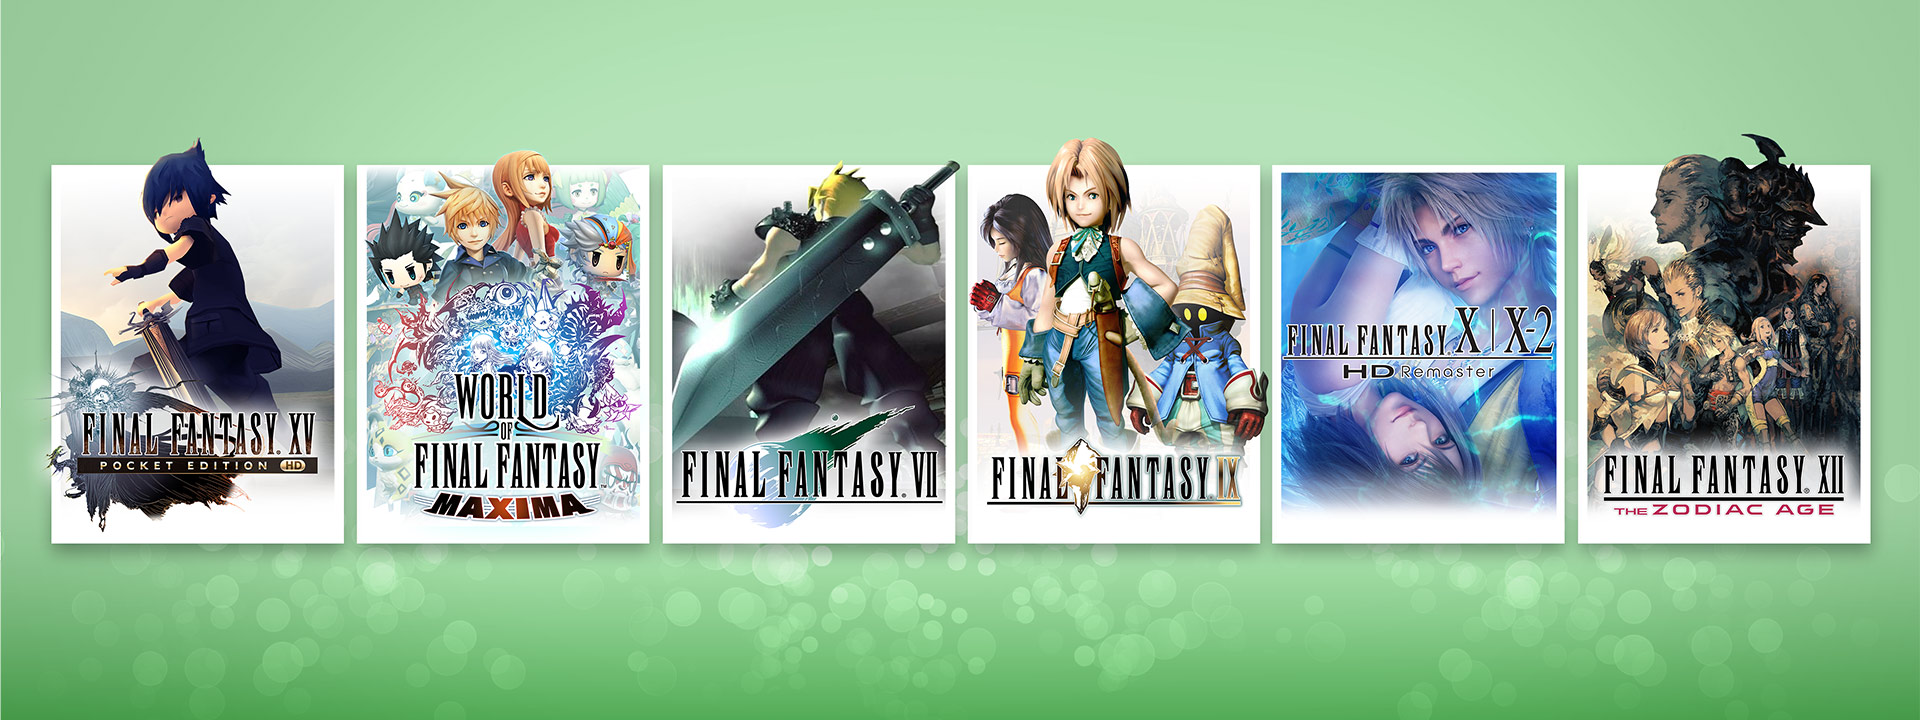 Imagem da caixa do FINAL FANTASY XV POCKET EDITION HD, WORLD OF FINAL FANTASY MAXIMA, FINAL FANTASY VII, FINAL FANTASY IX, FINAL FANTASY X | X-2 HD Remaster e FINAL FANTASY XII THE ZODIAC AGE